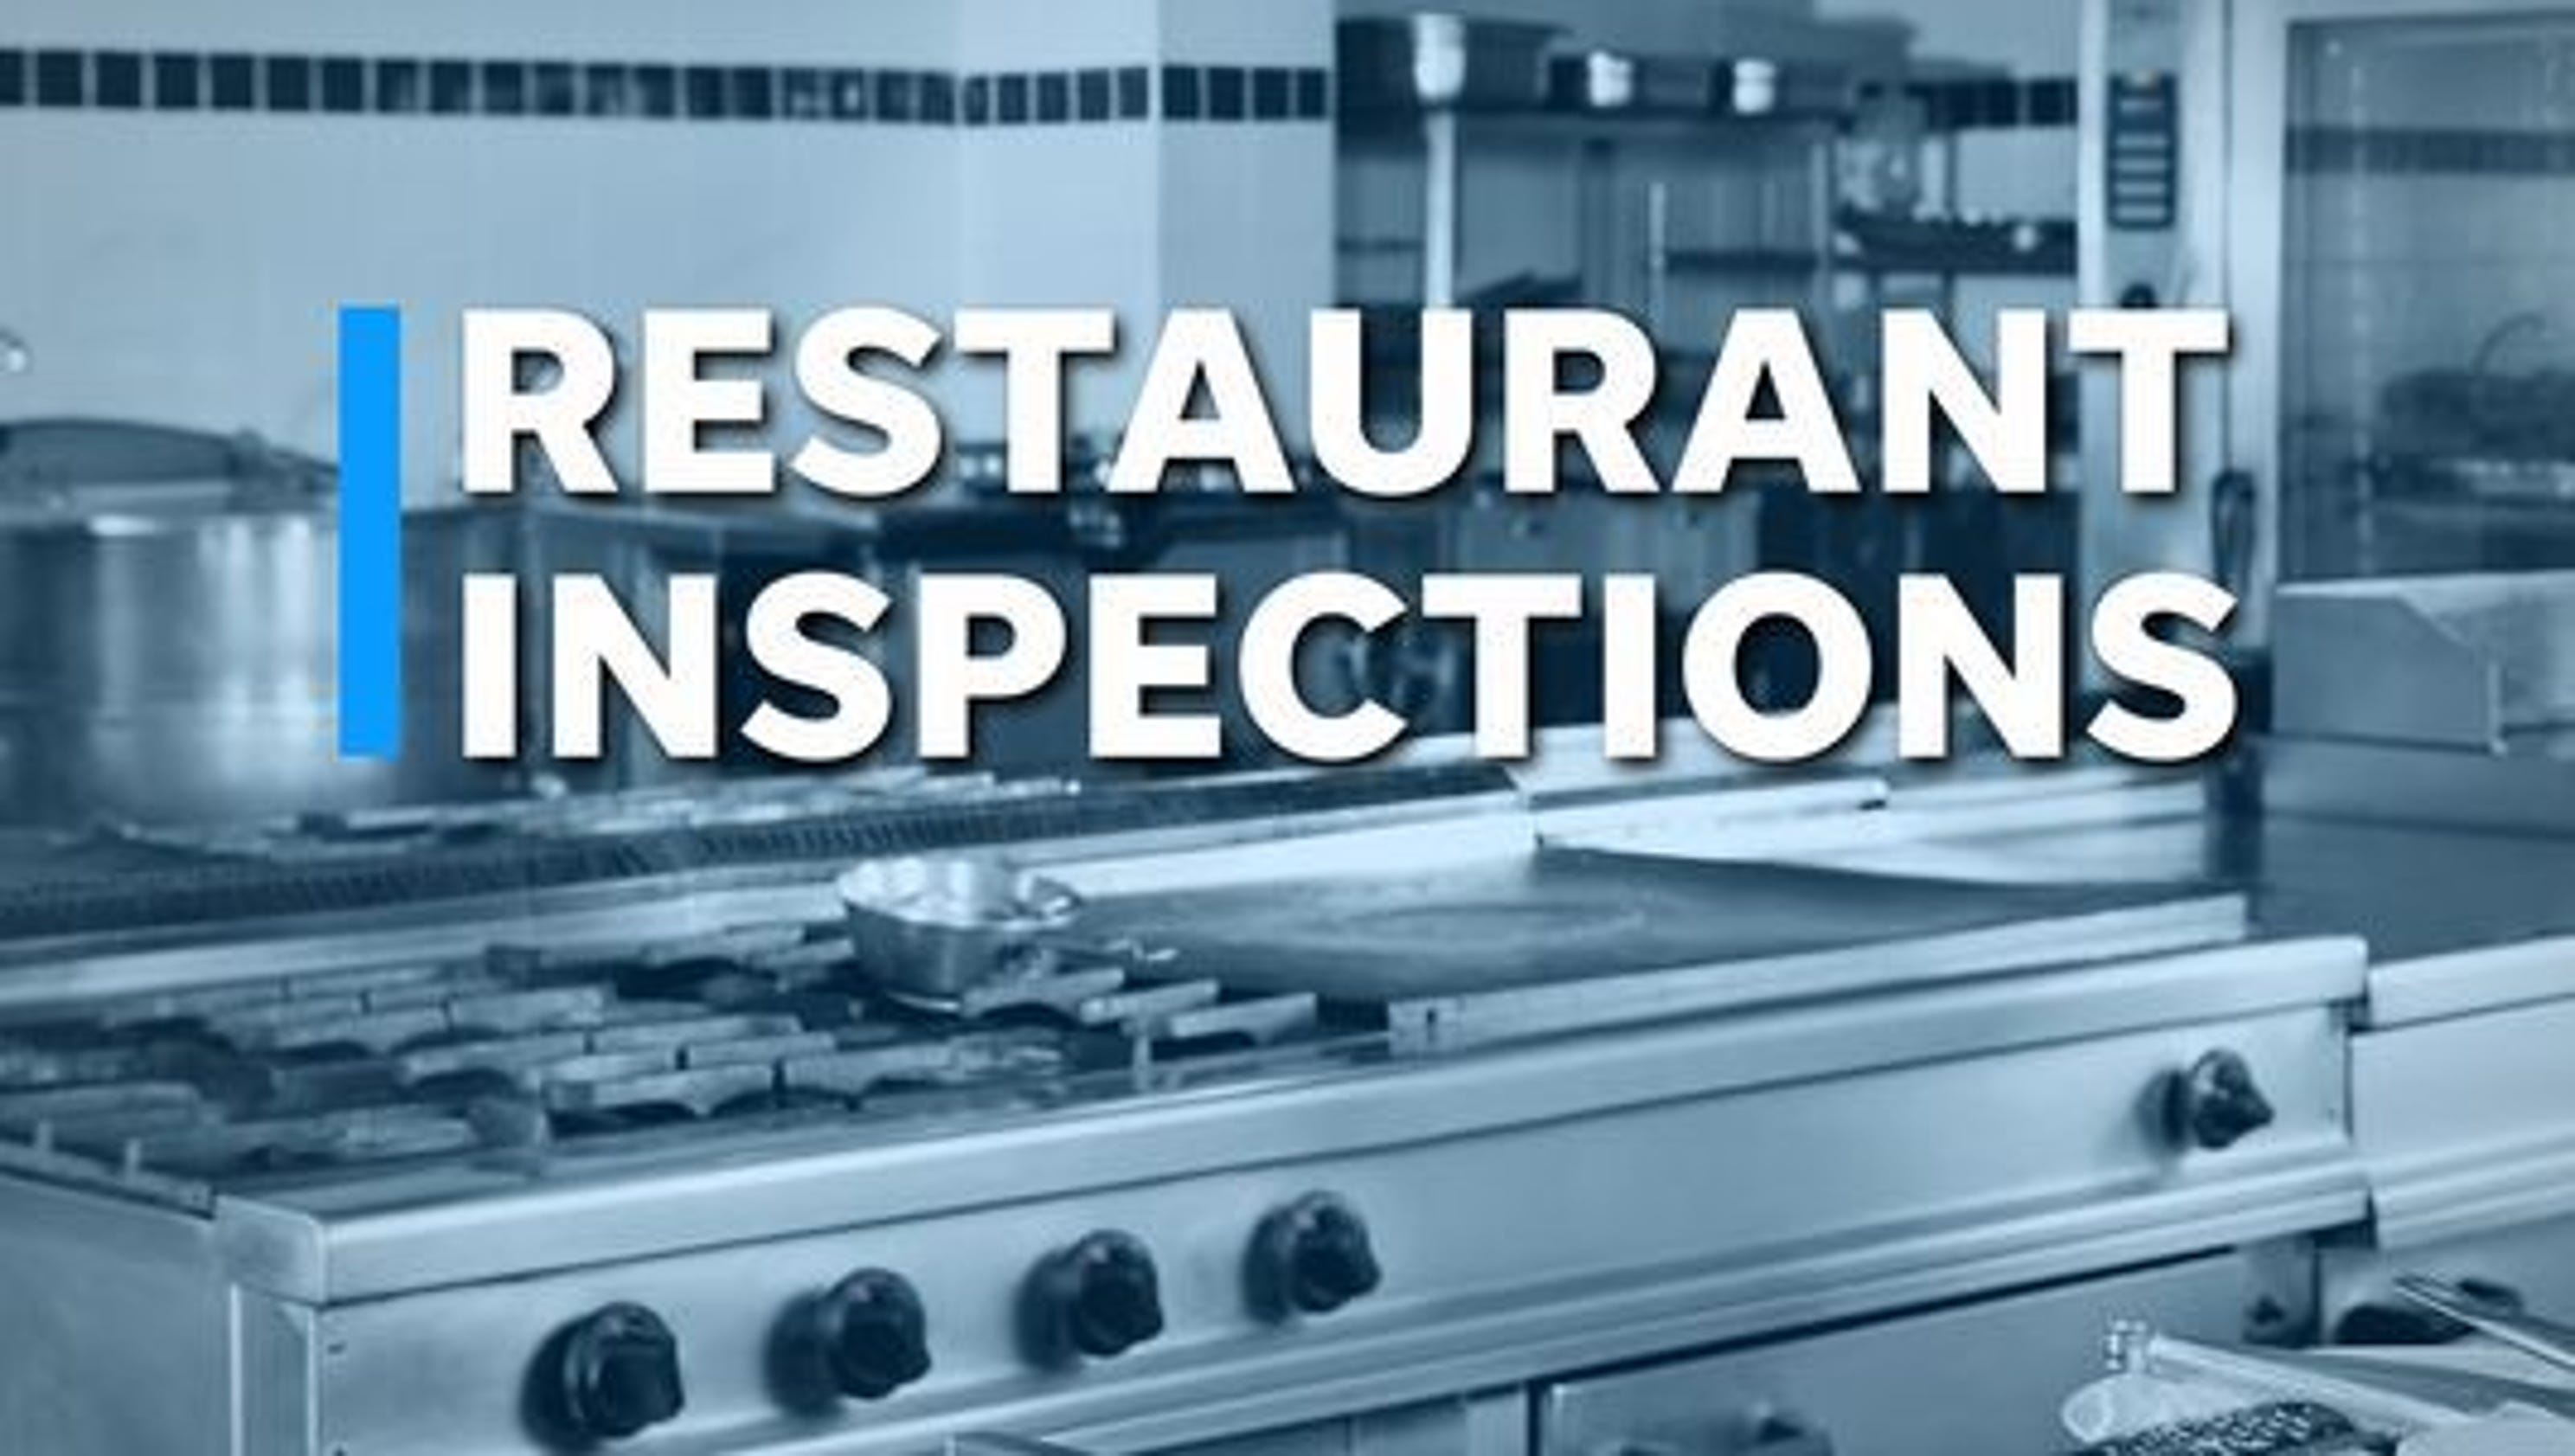 York County restaurant inspections: 3 out of compliance